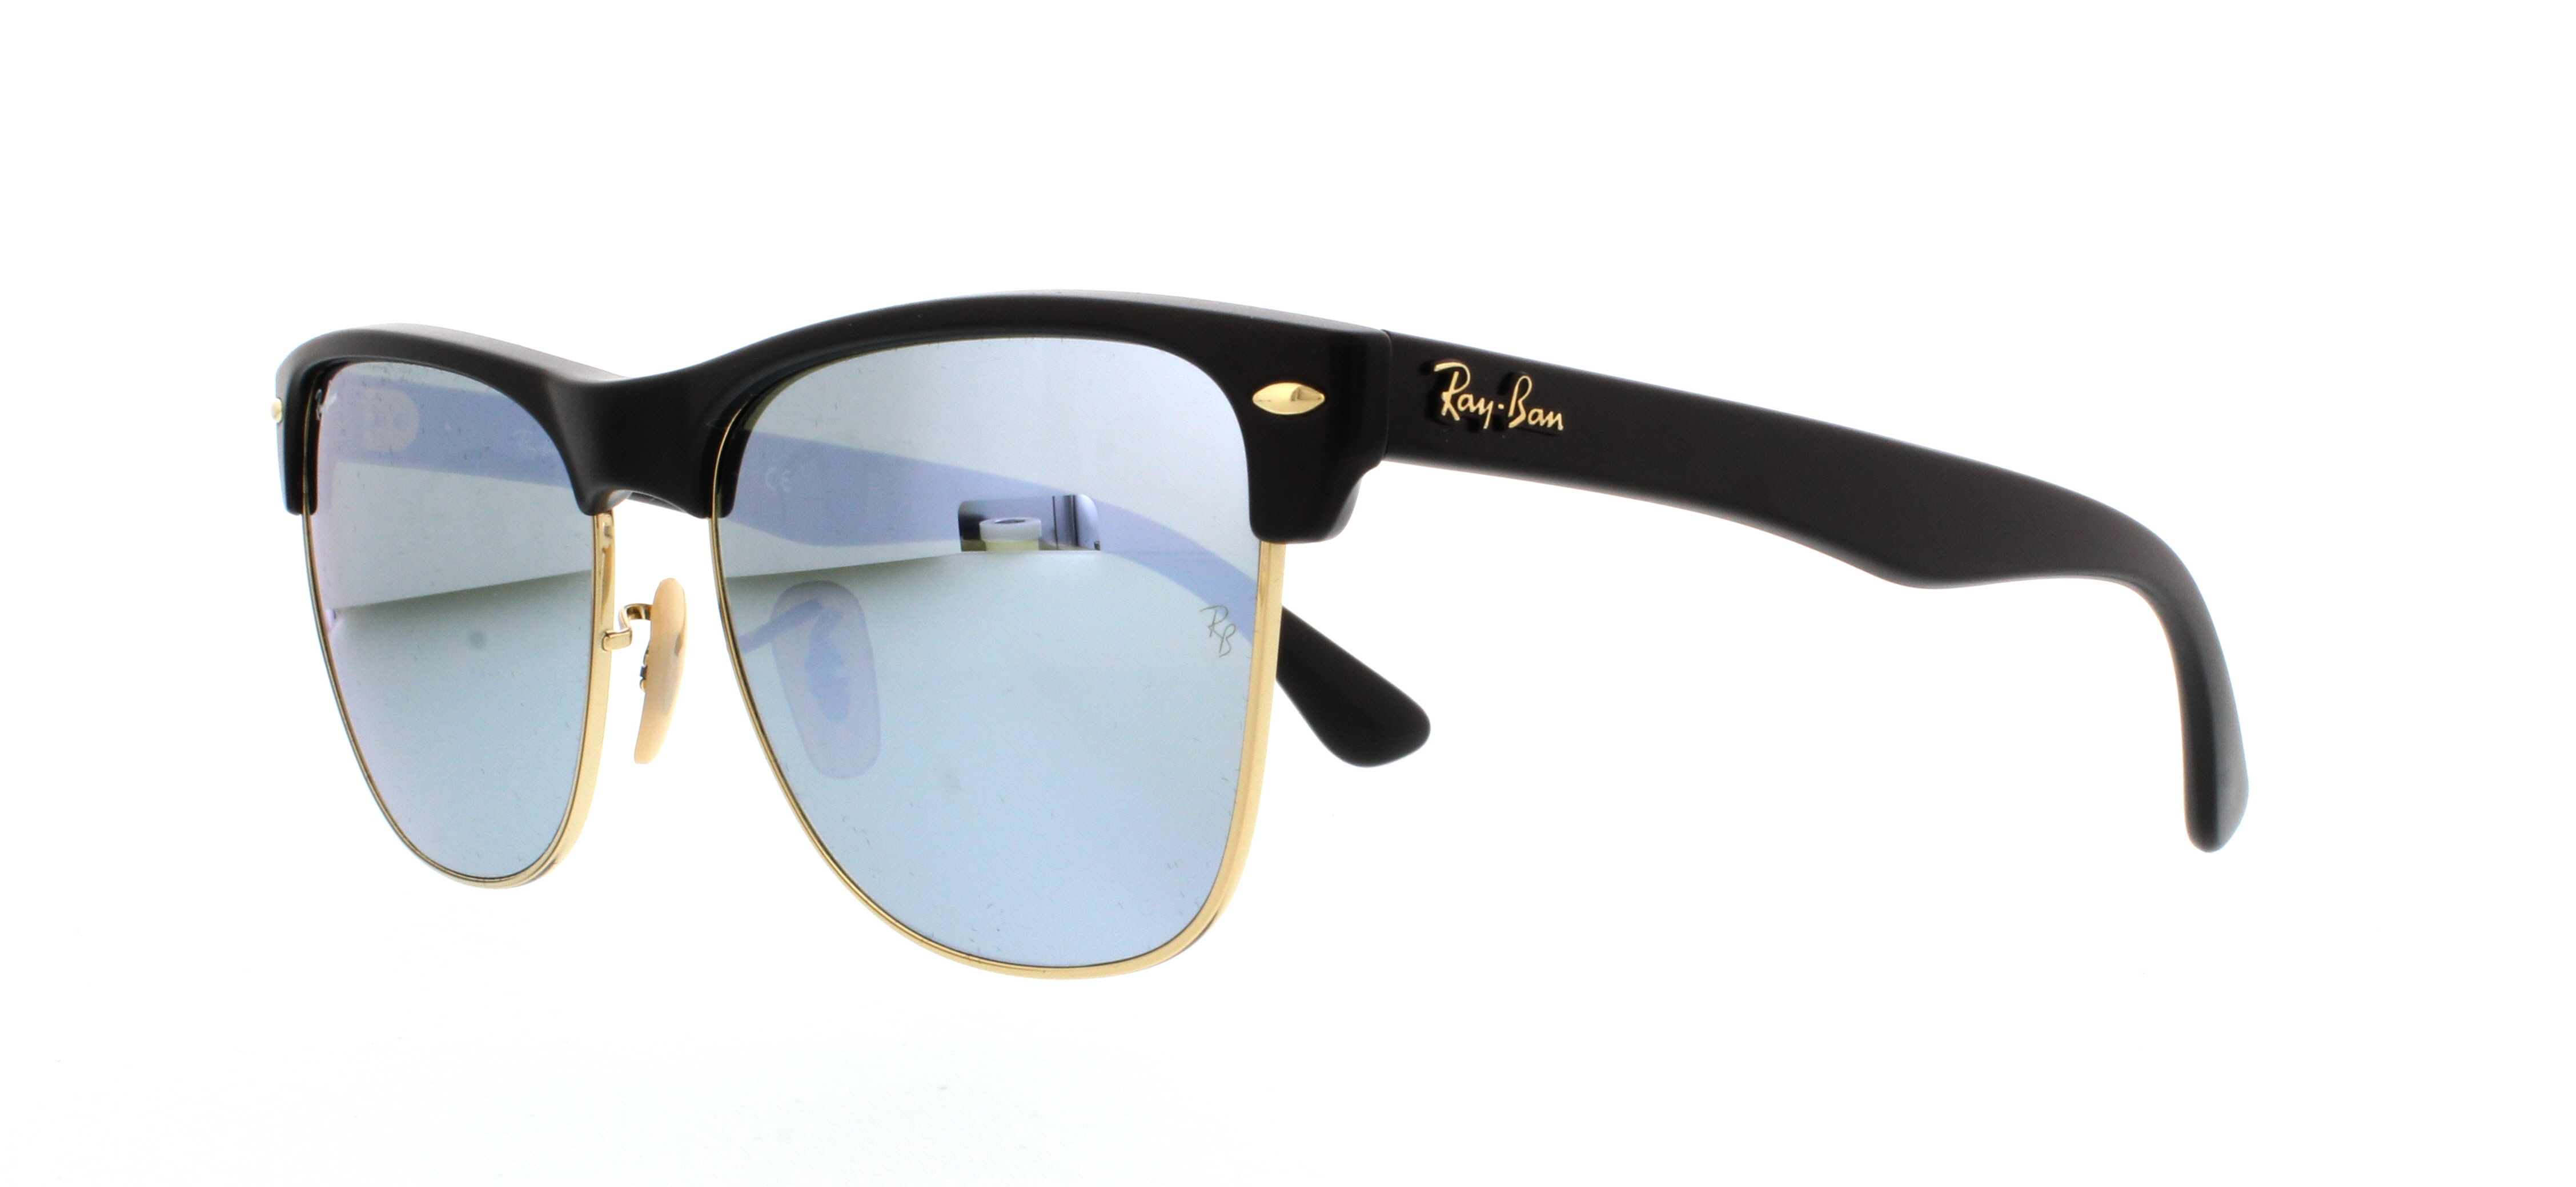 7660987ff9f ... Picture of Ray Ban Sunglasses RB4175 Clubmaster Oversized ...